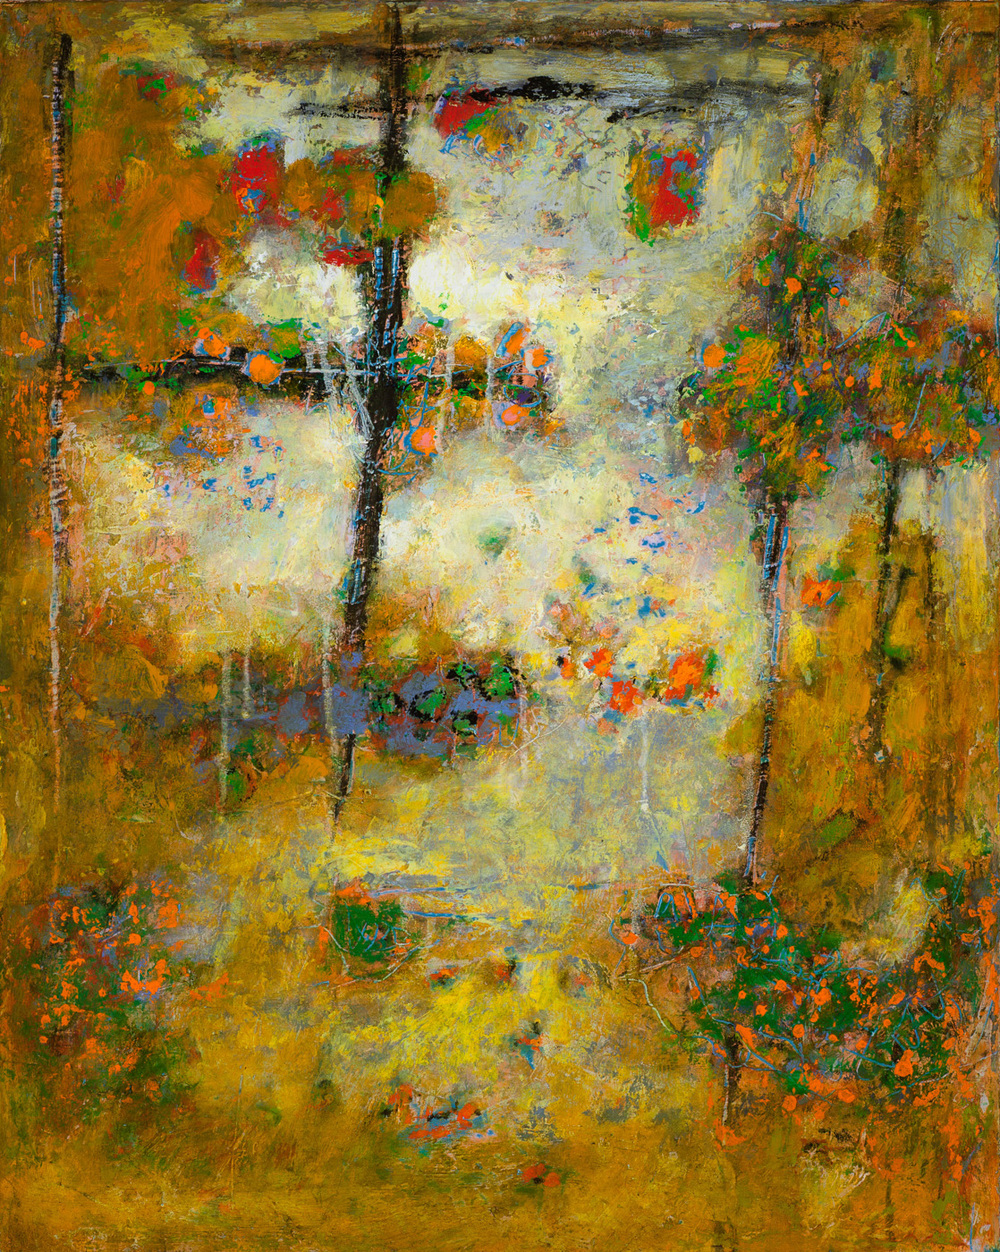 Dreamesque   | oil on panel | 20 x 16"